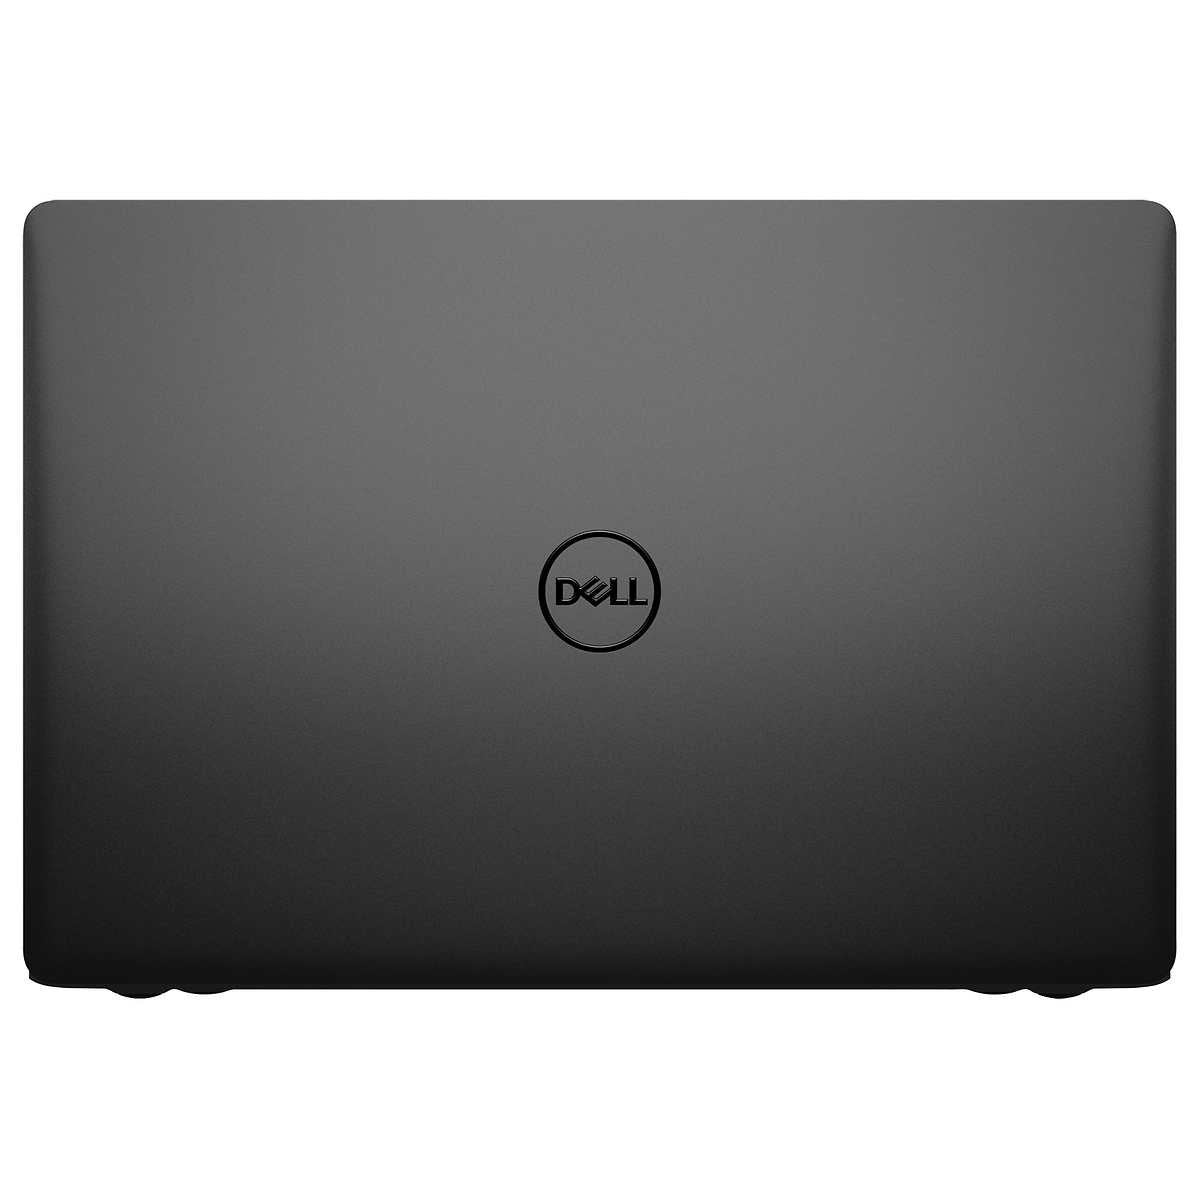 "Dell Inspiron 5000 15.6"" Full HD Touchscreen Laptop, Intel Core i3-8130U up to 3.40GHz, 8GB Memory, 256GB Solid State Drive, Backlit Keyboard, Wireless-AC, Windows 10, Black"